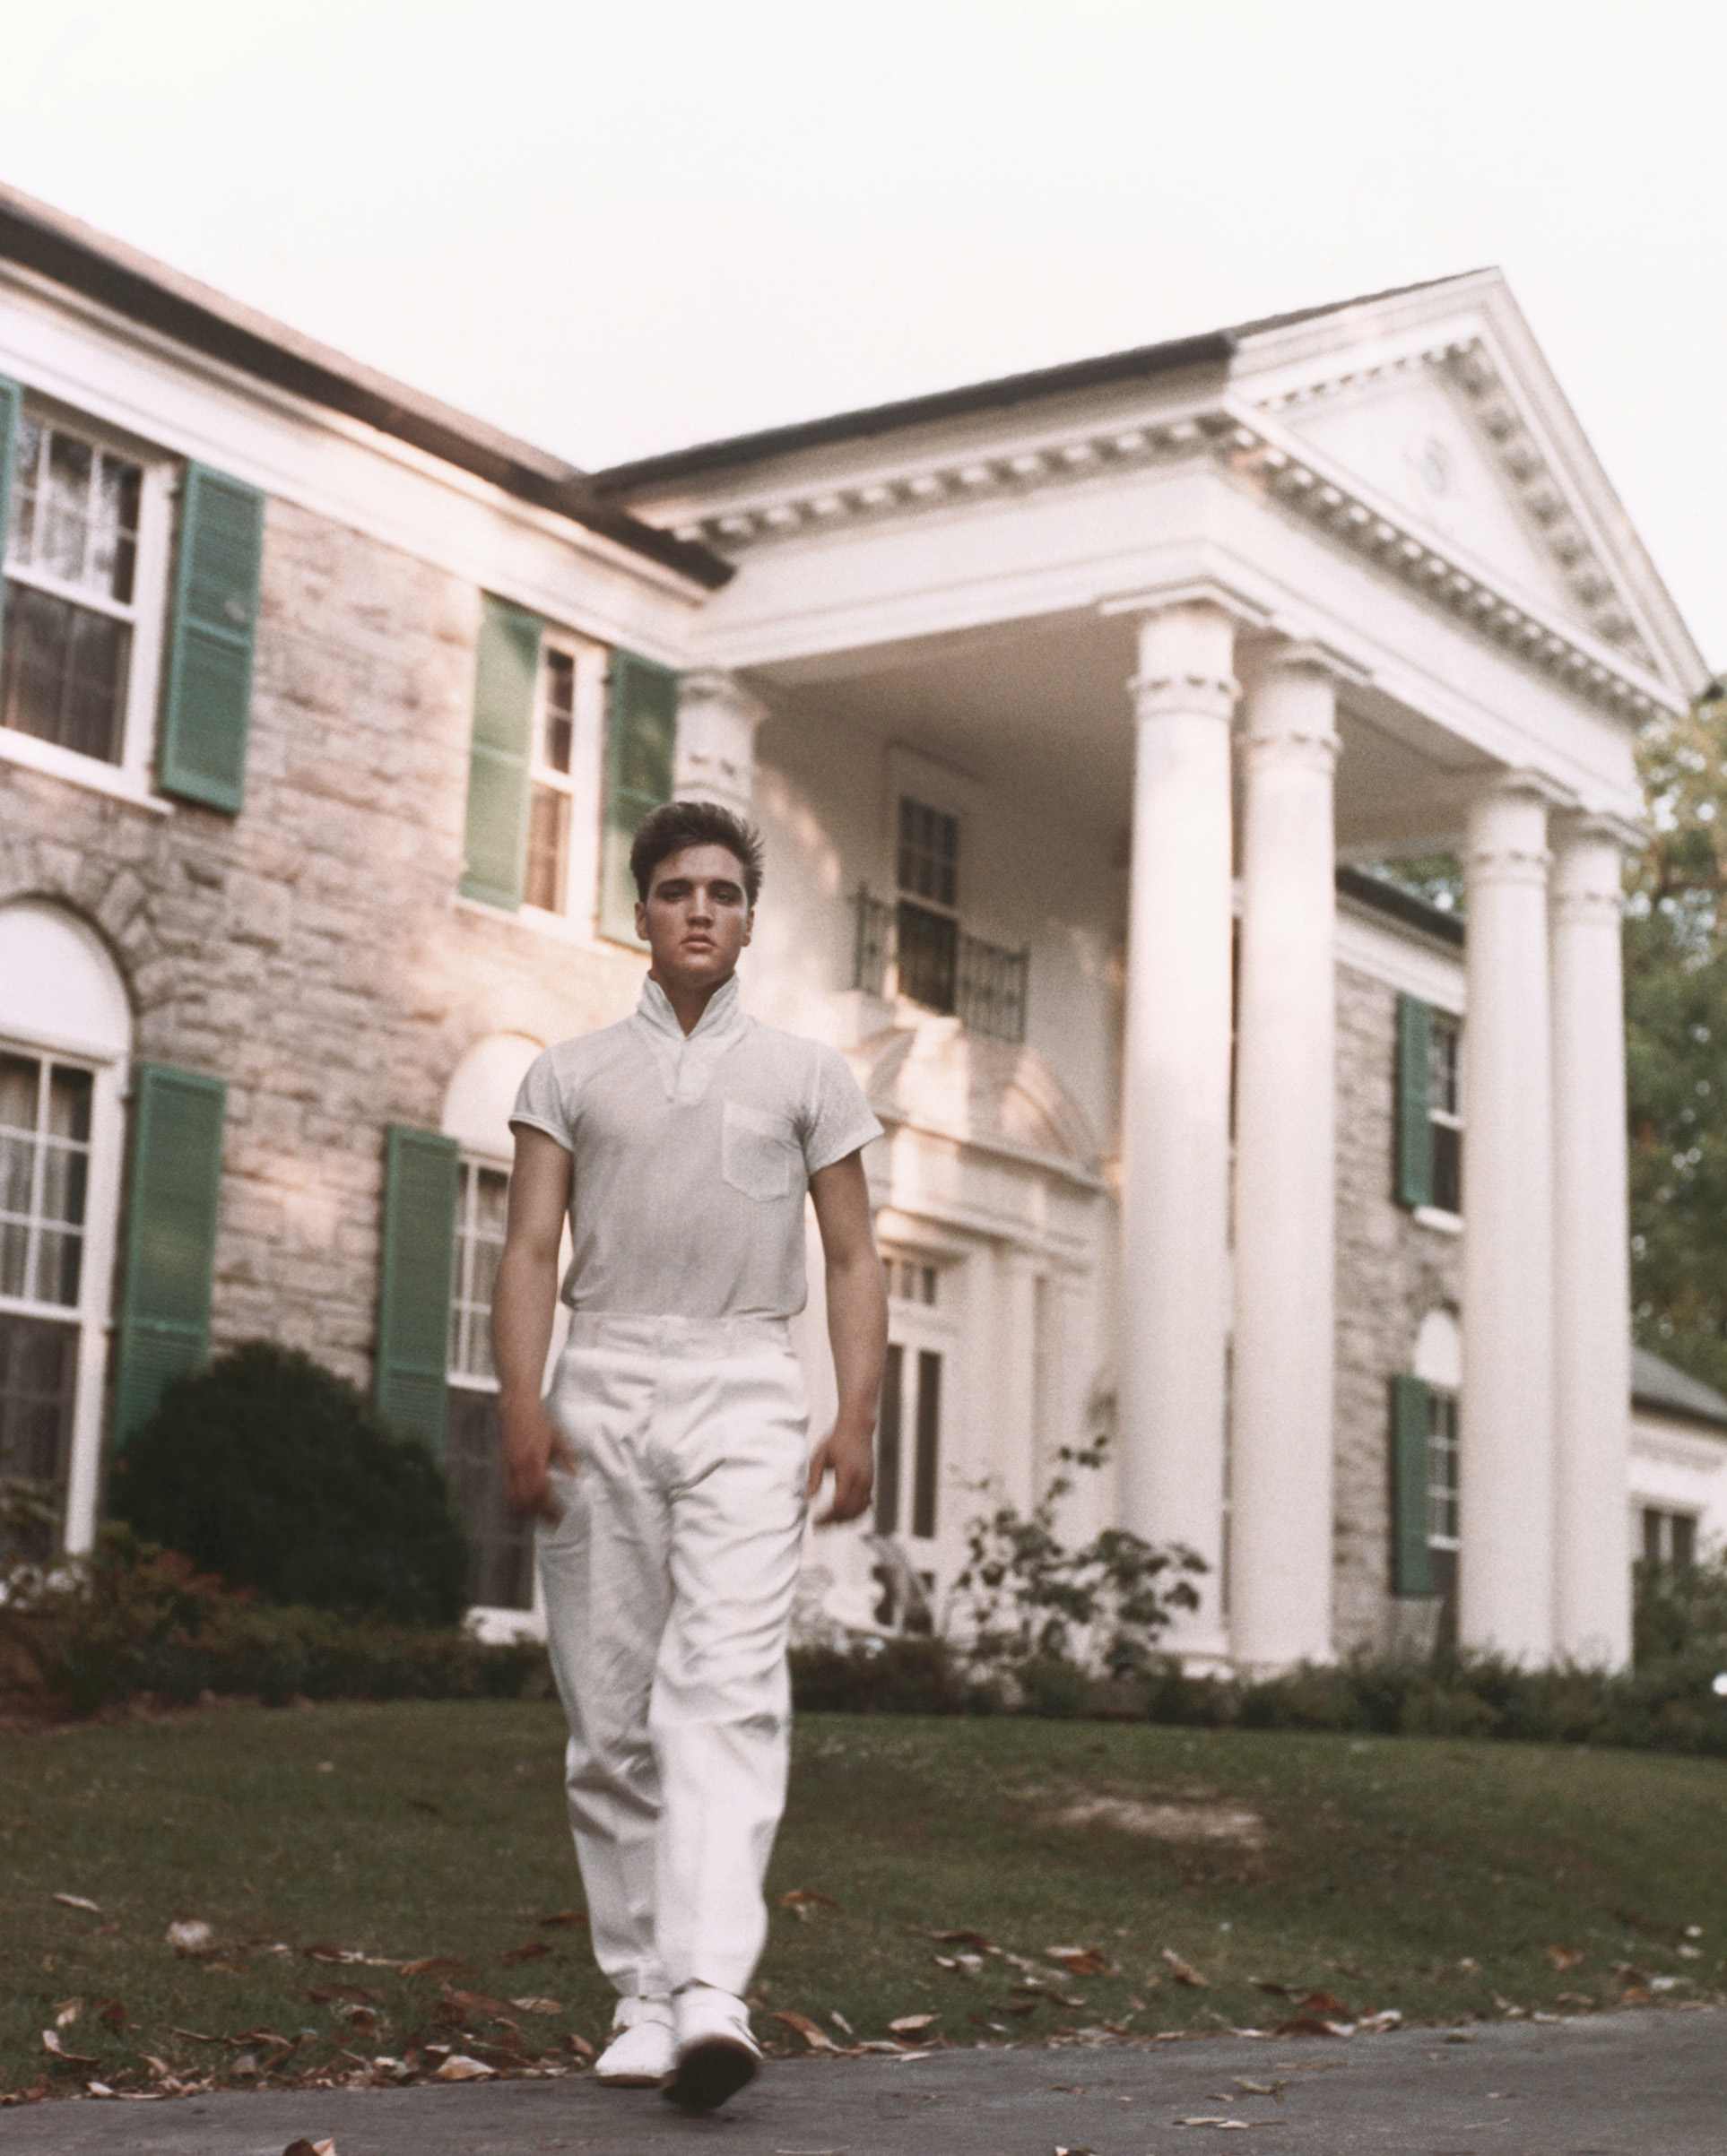 Elvis strolls the grounds of his Graceland estate in Memphis, Tenn. circa 1957.